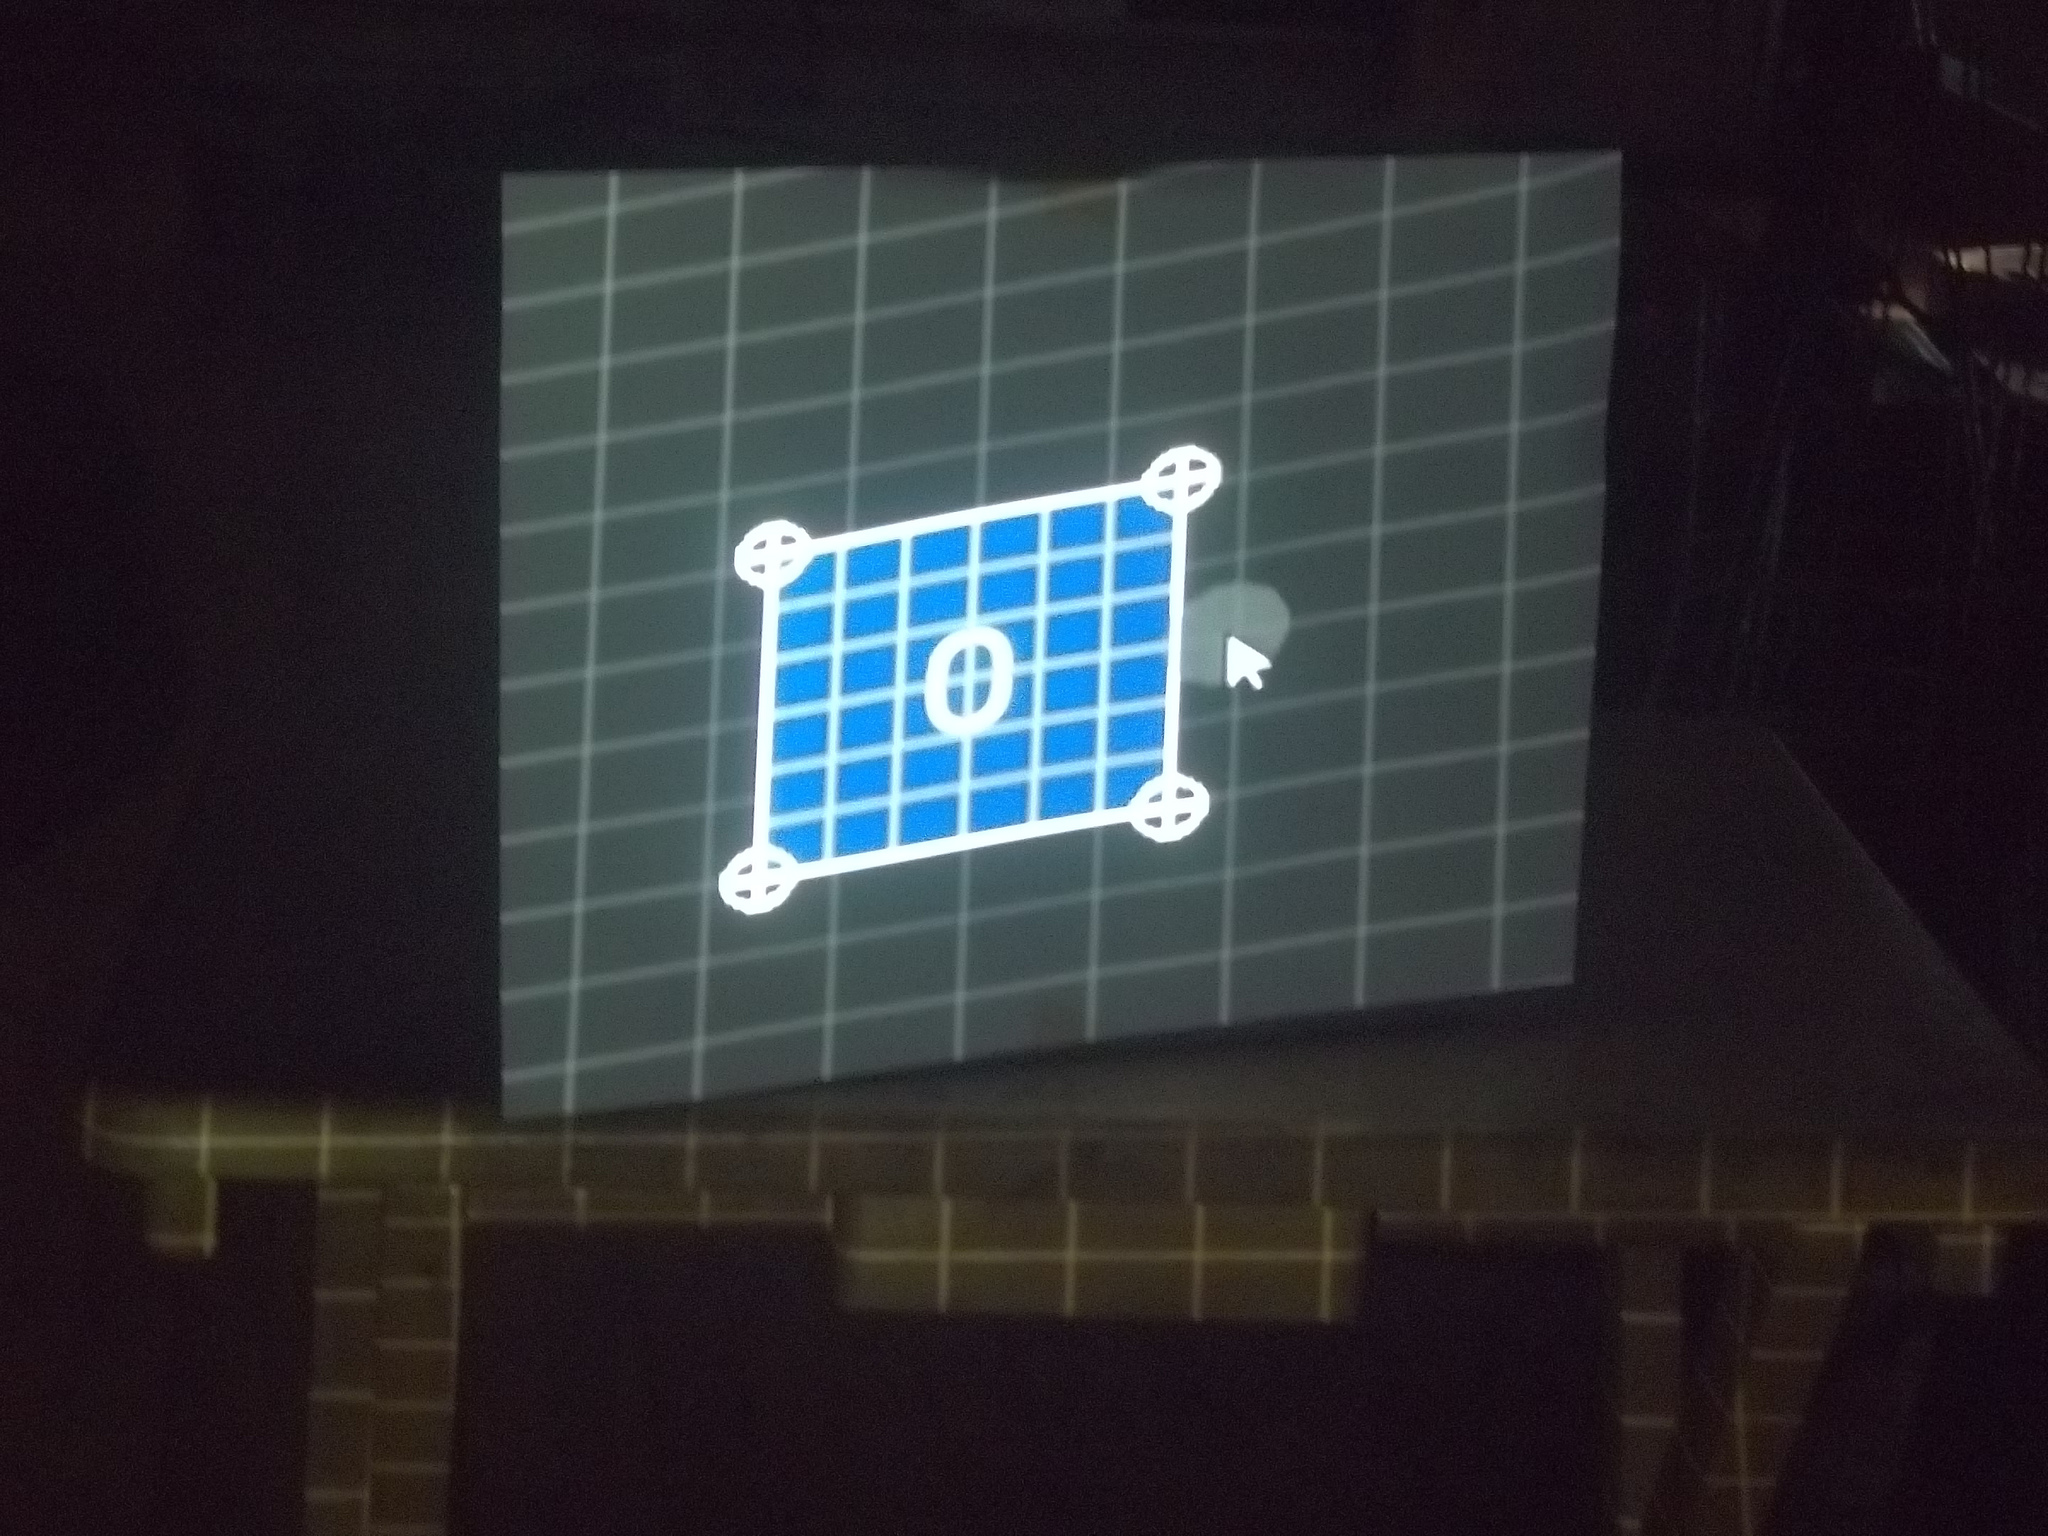 SurfaceMapperGUI - a simple Processing interface for projection